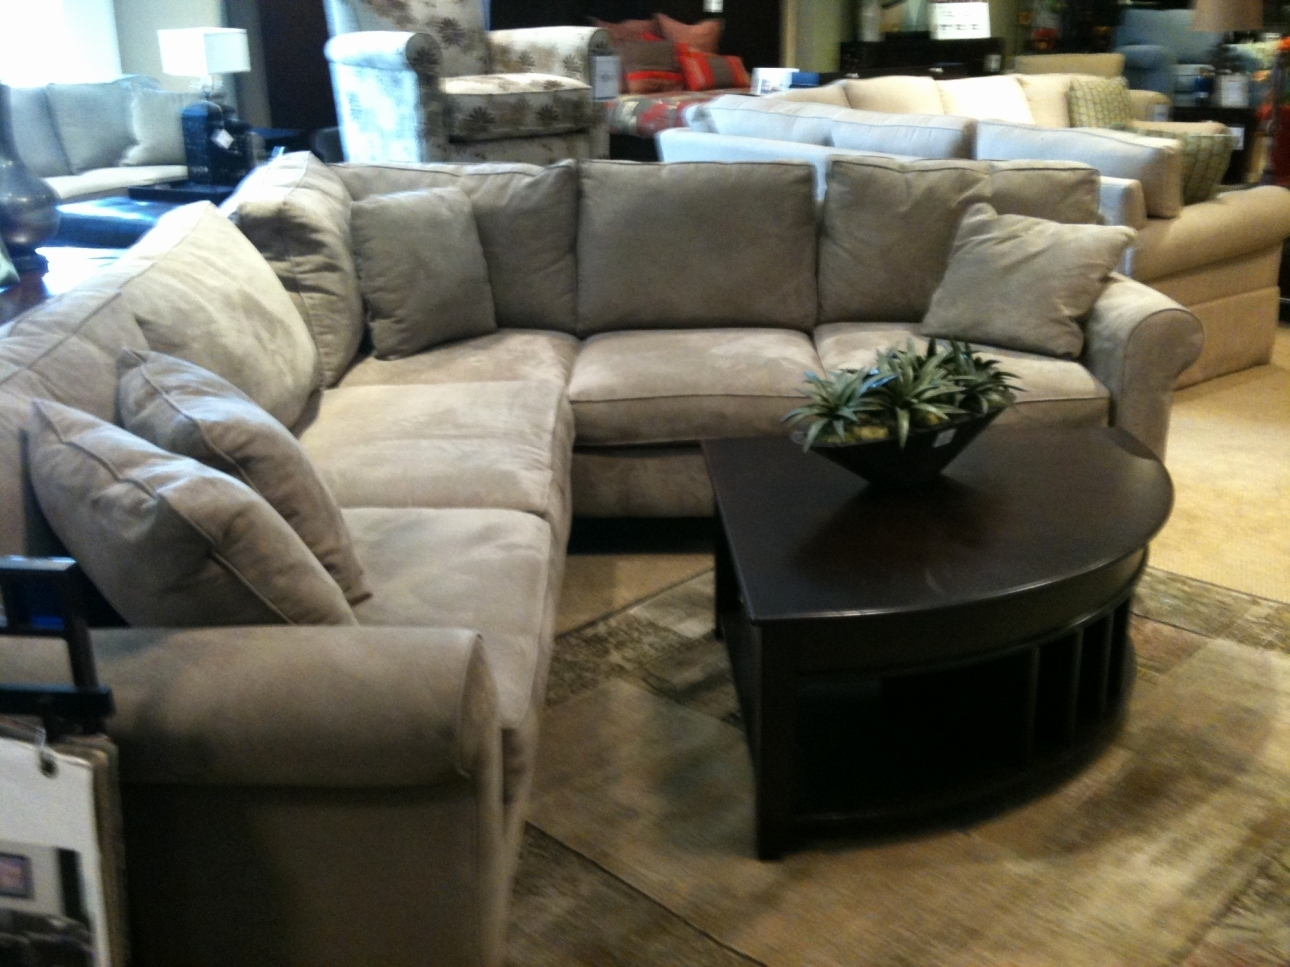 37 Stupefying Havertys Sectional Sofa Galleries - Sectional Sofa inside Sectional Sofas in Savannah Ga (Image 1 of 10)